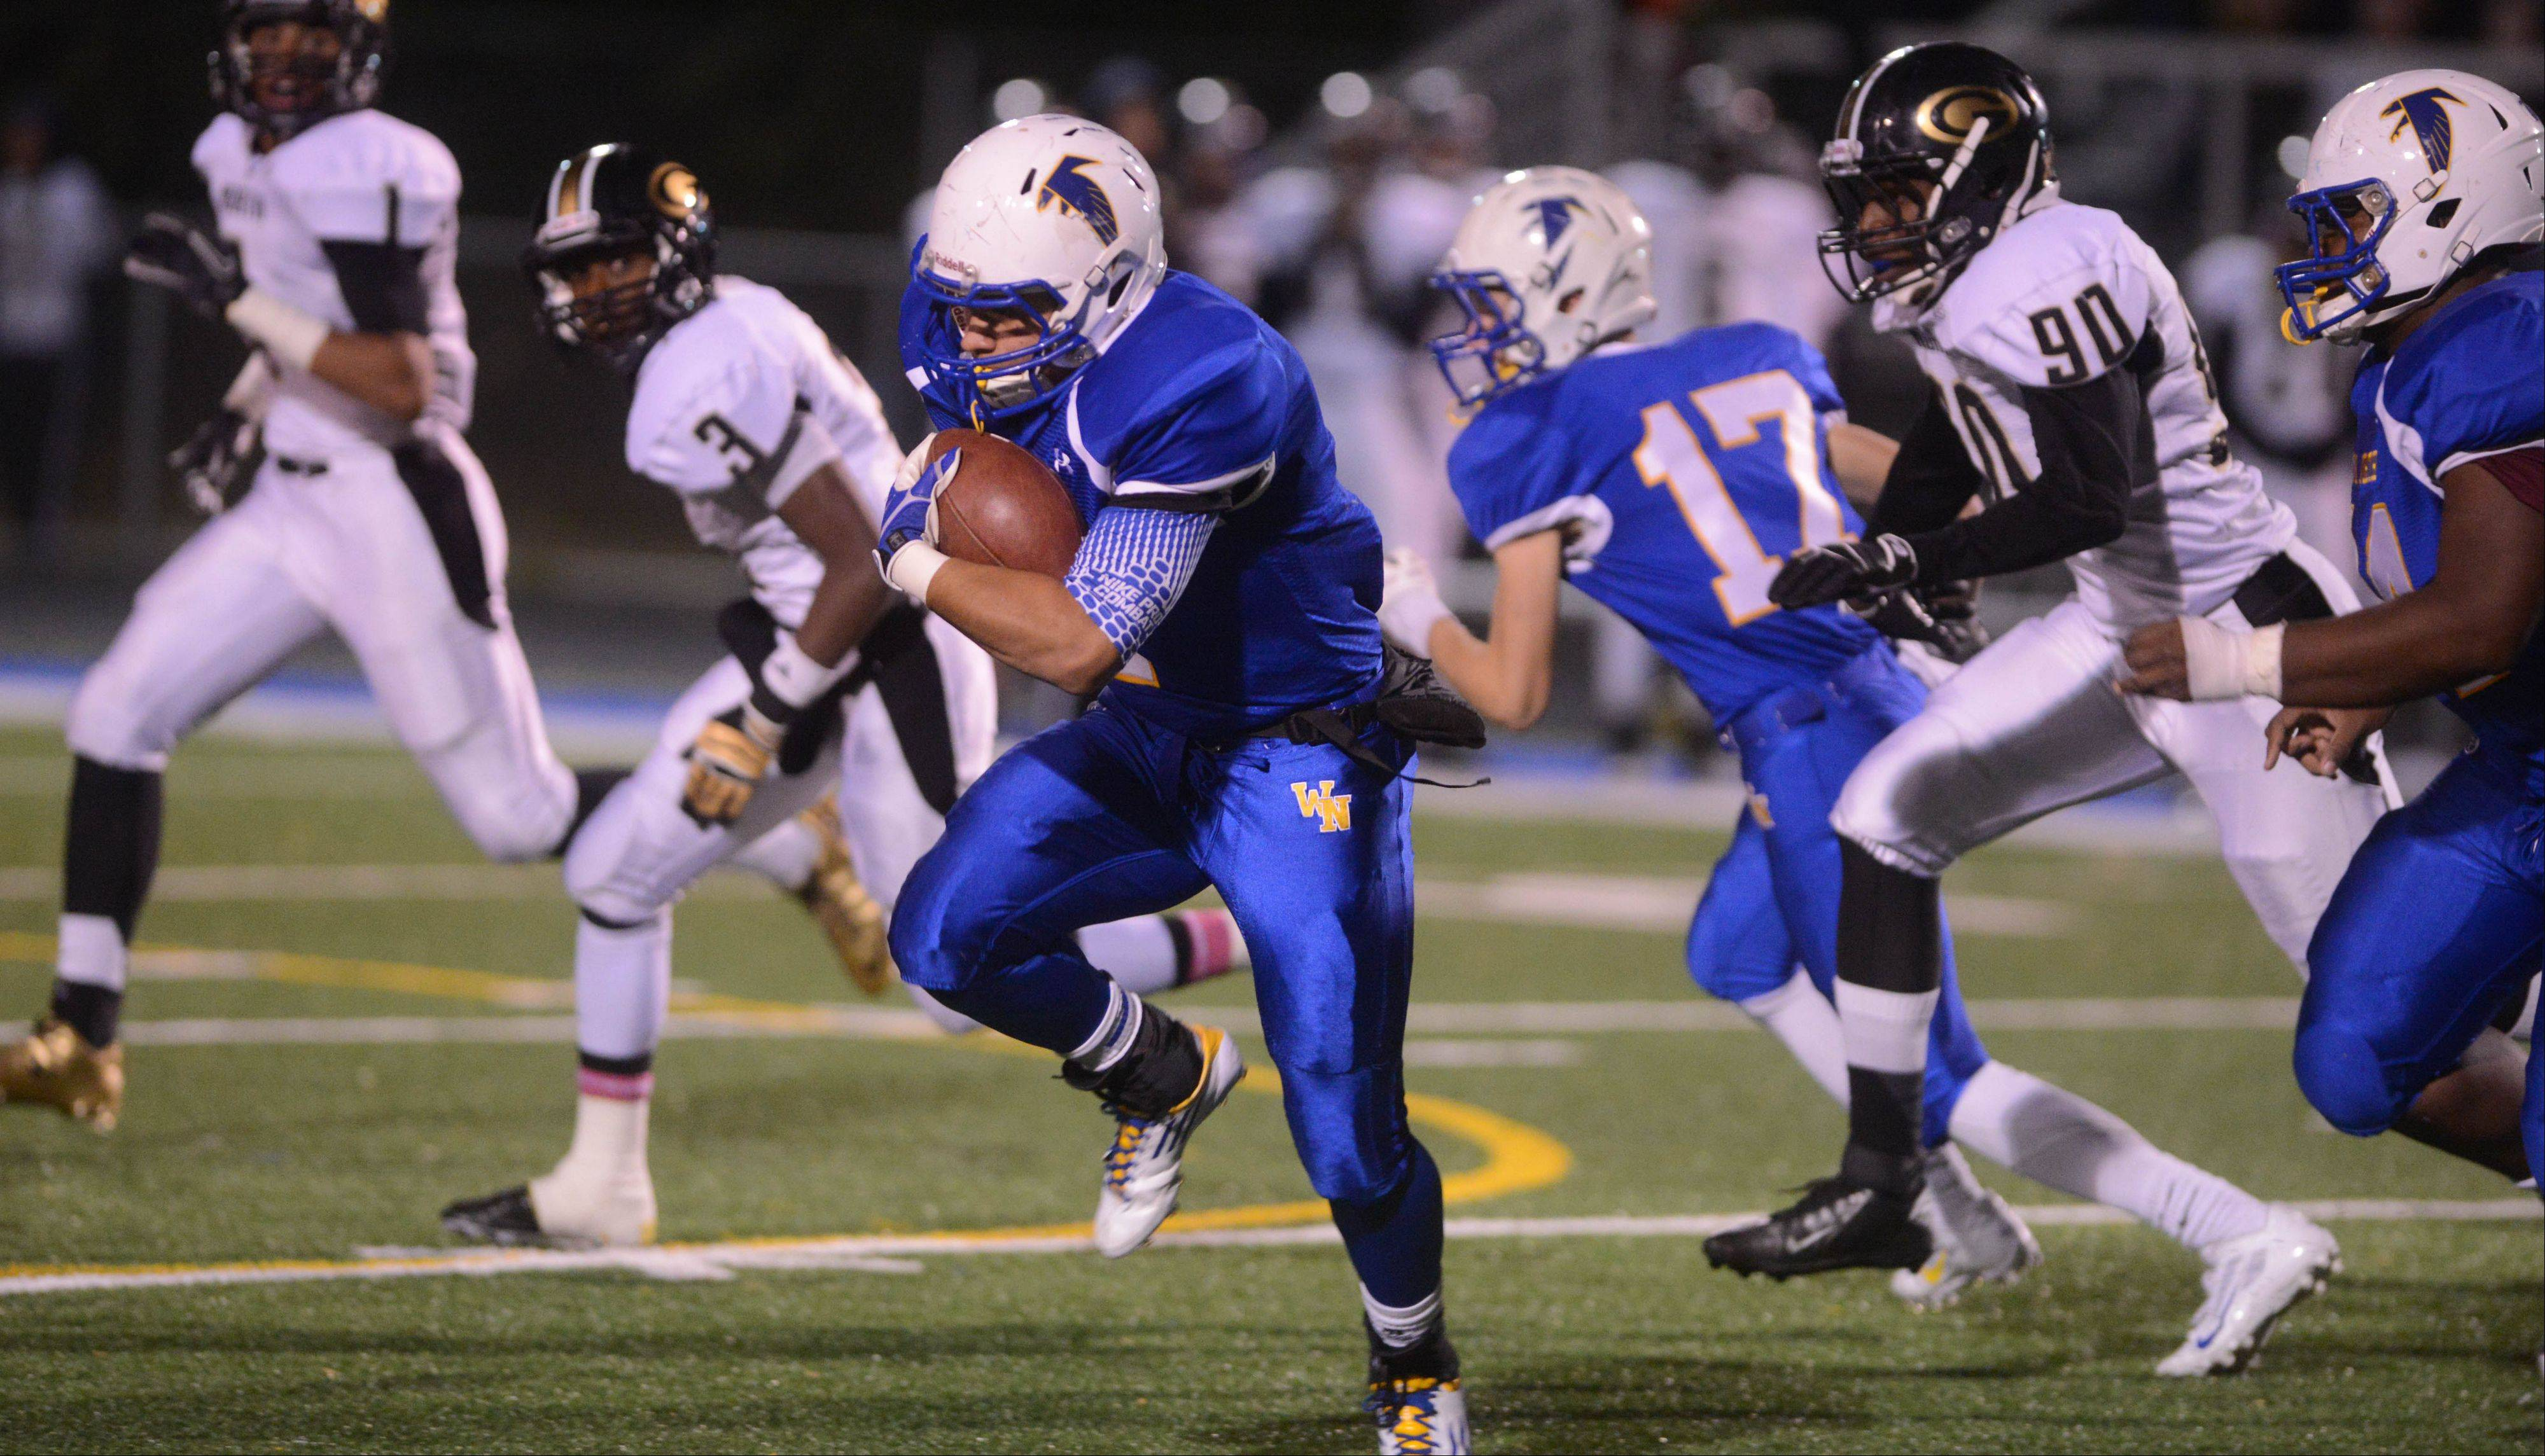 Images: Wheaton North vs. Glenbard North football